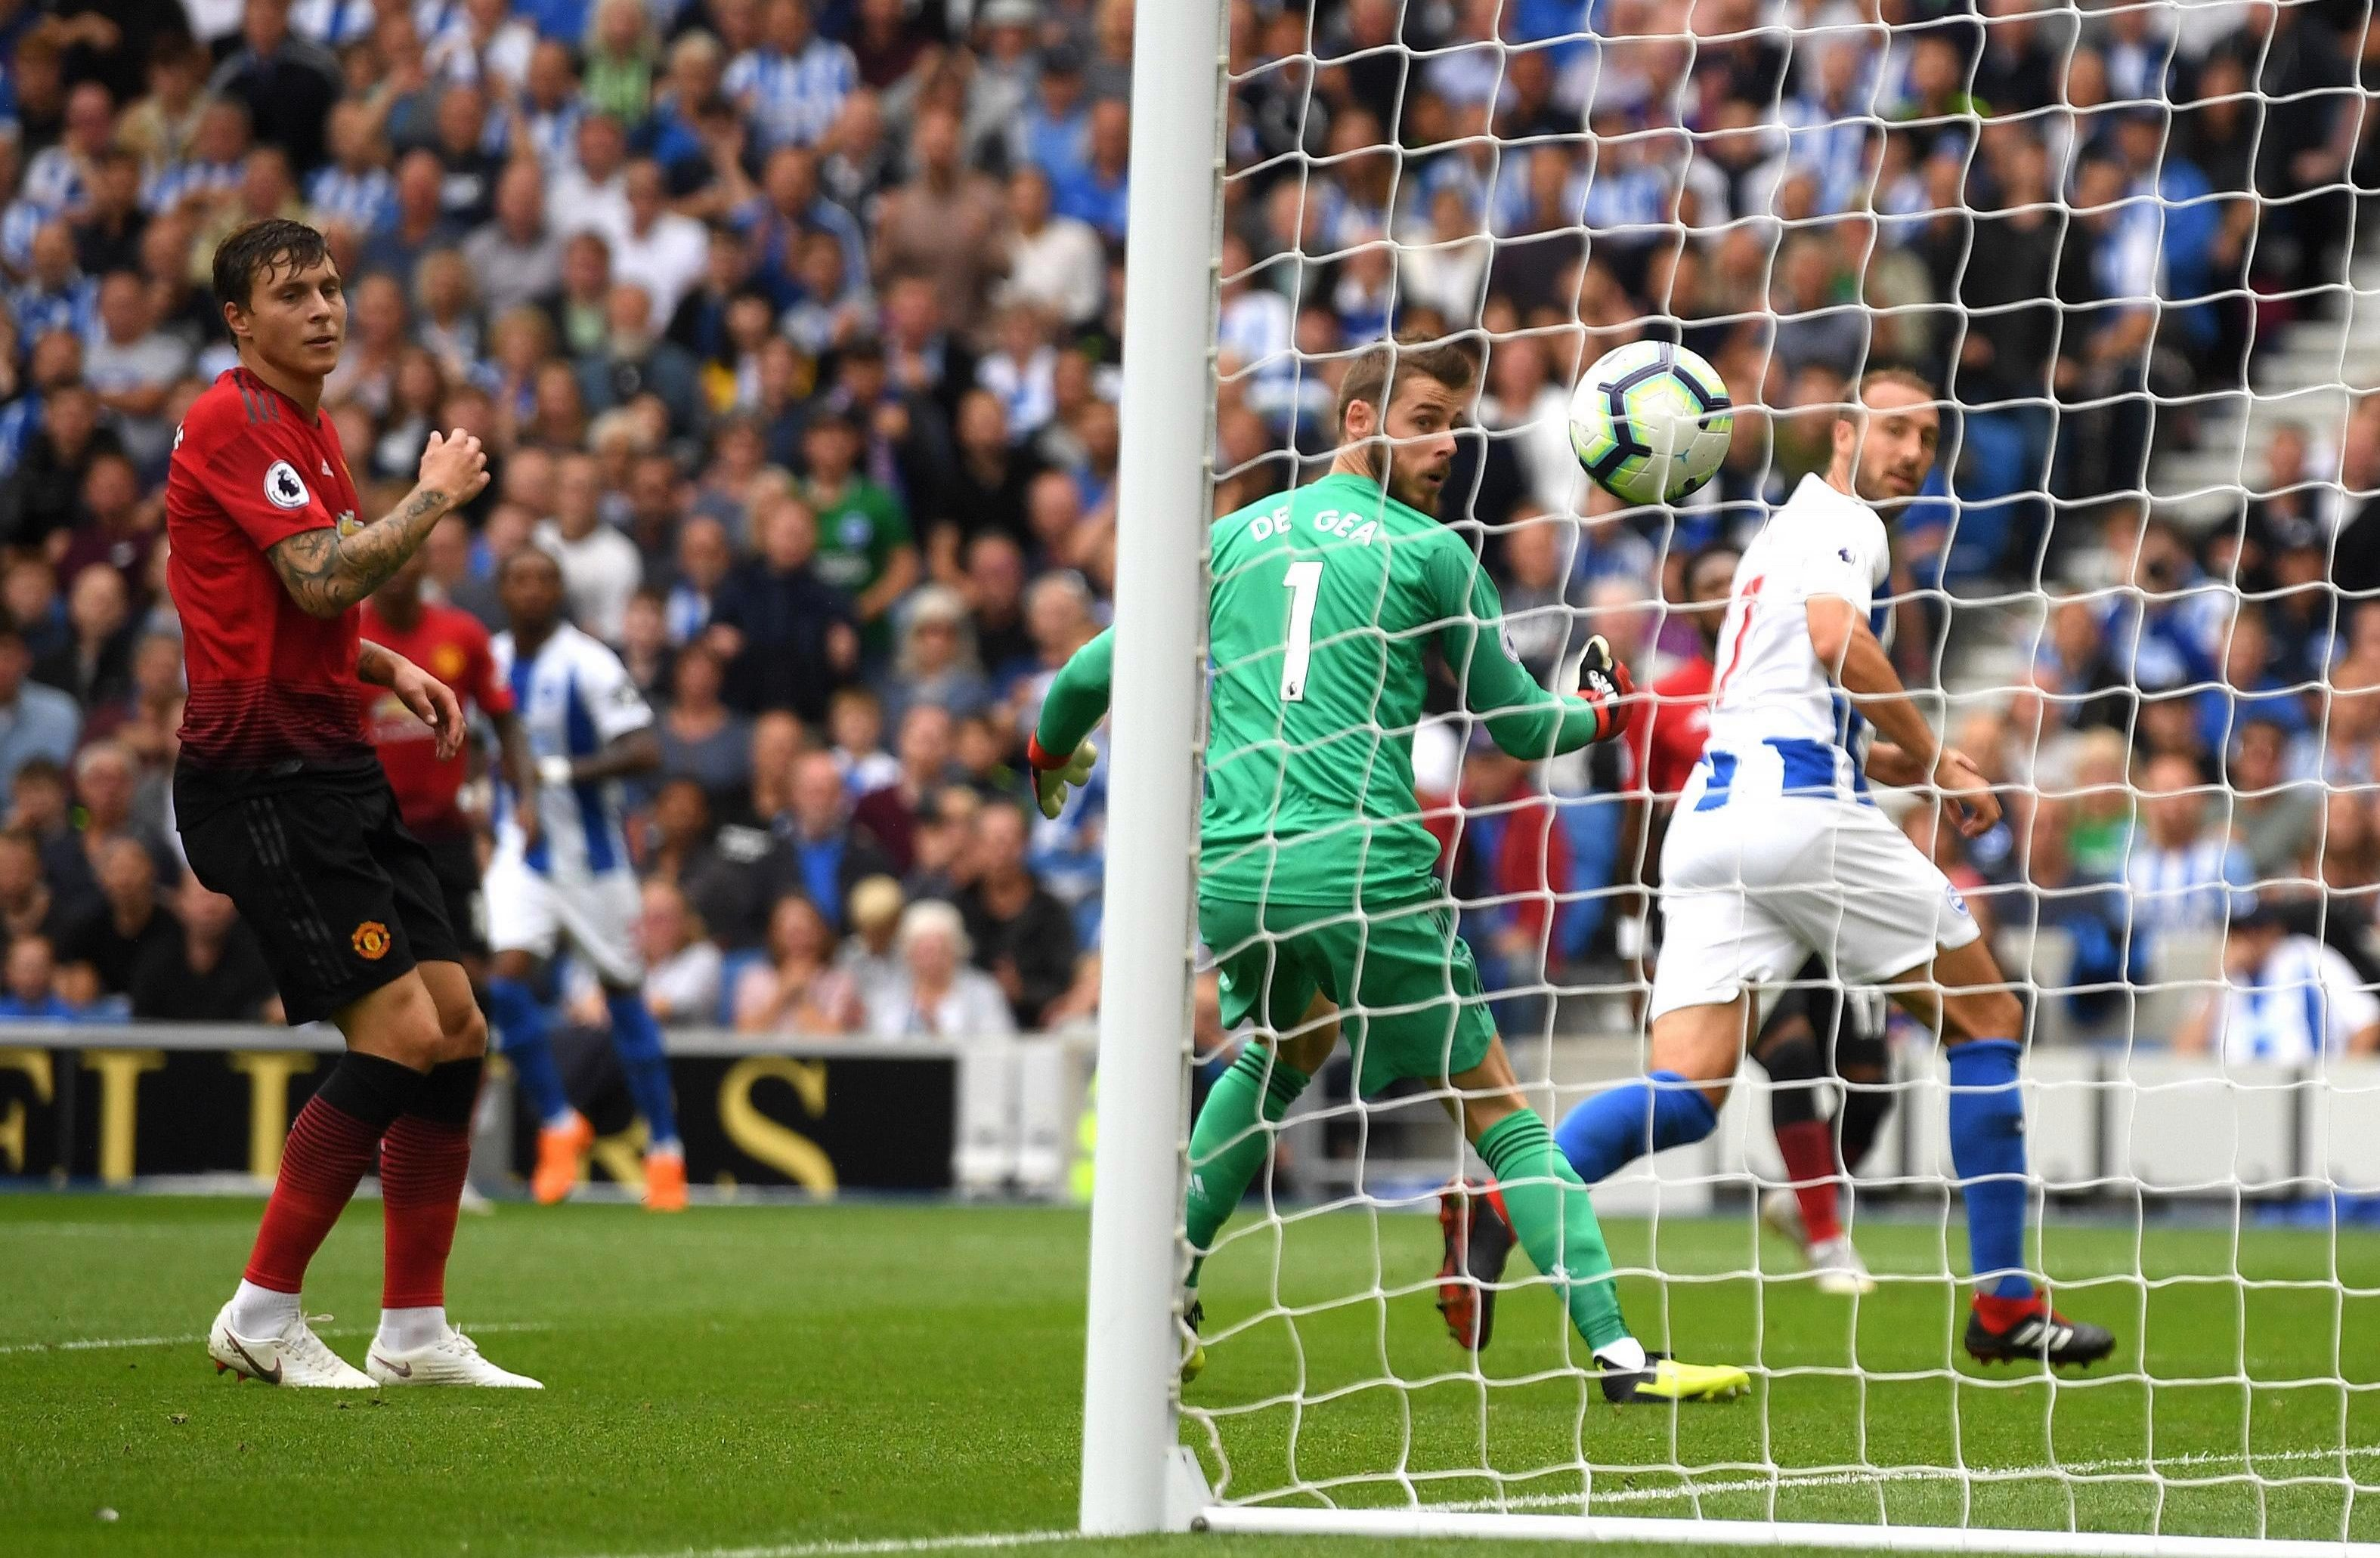 Glenn Murray's phenomenal finish against Manchester United fired Brighton into the lead at the Amex